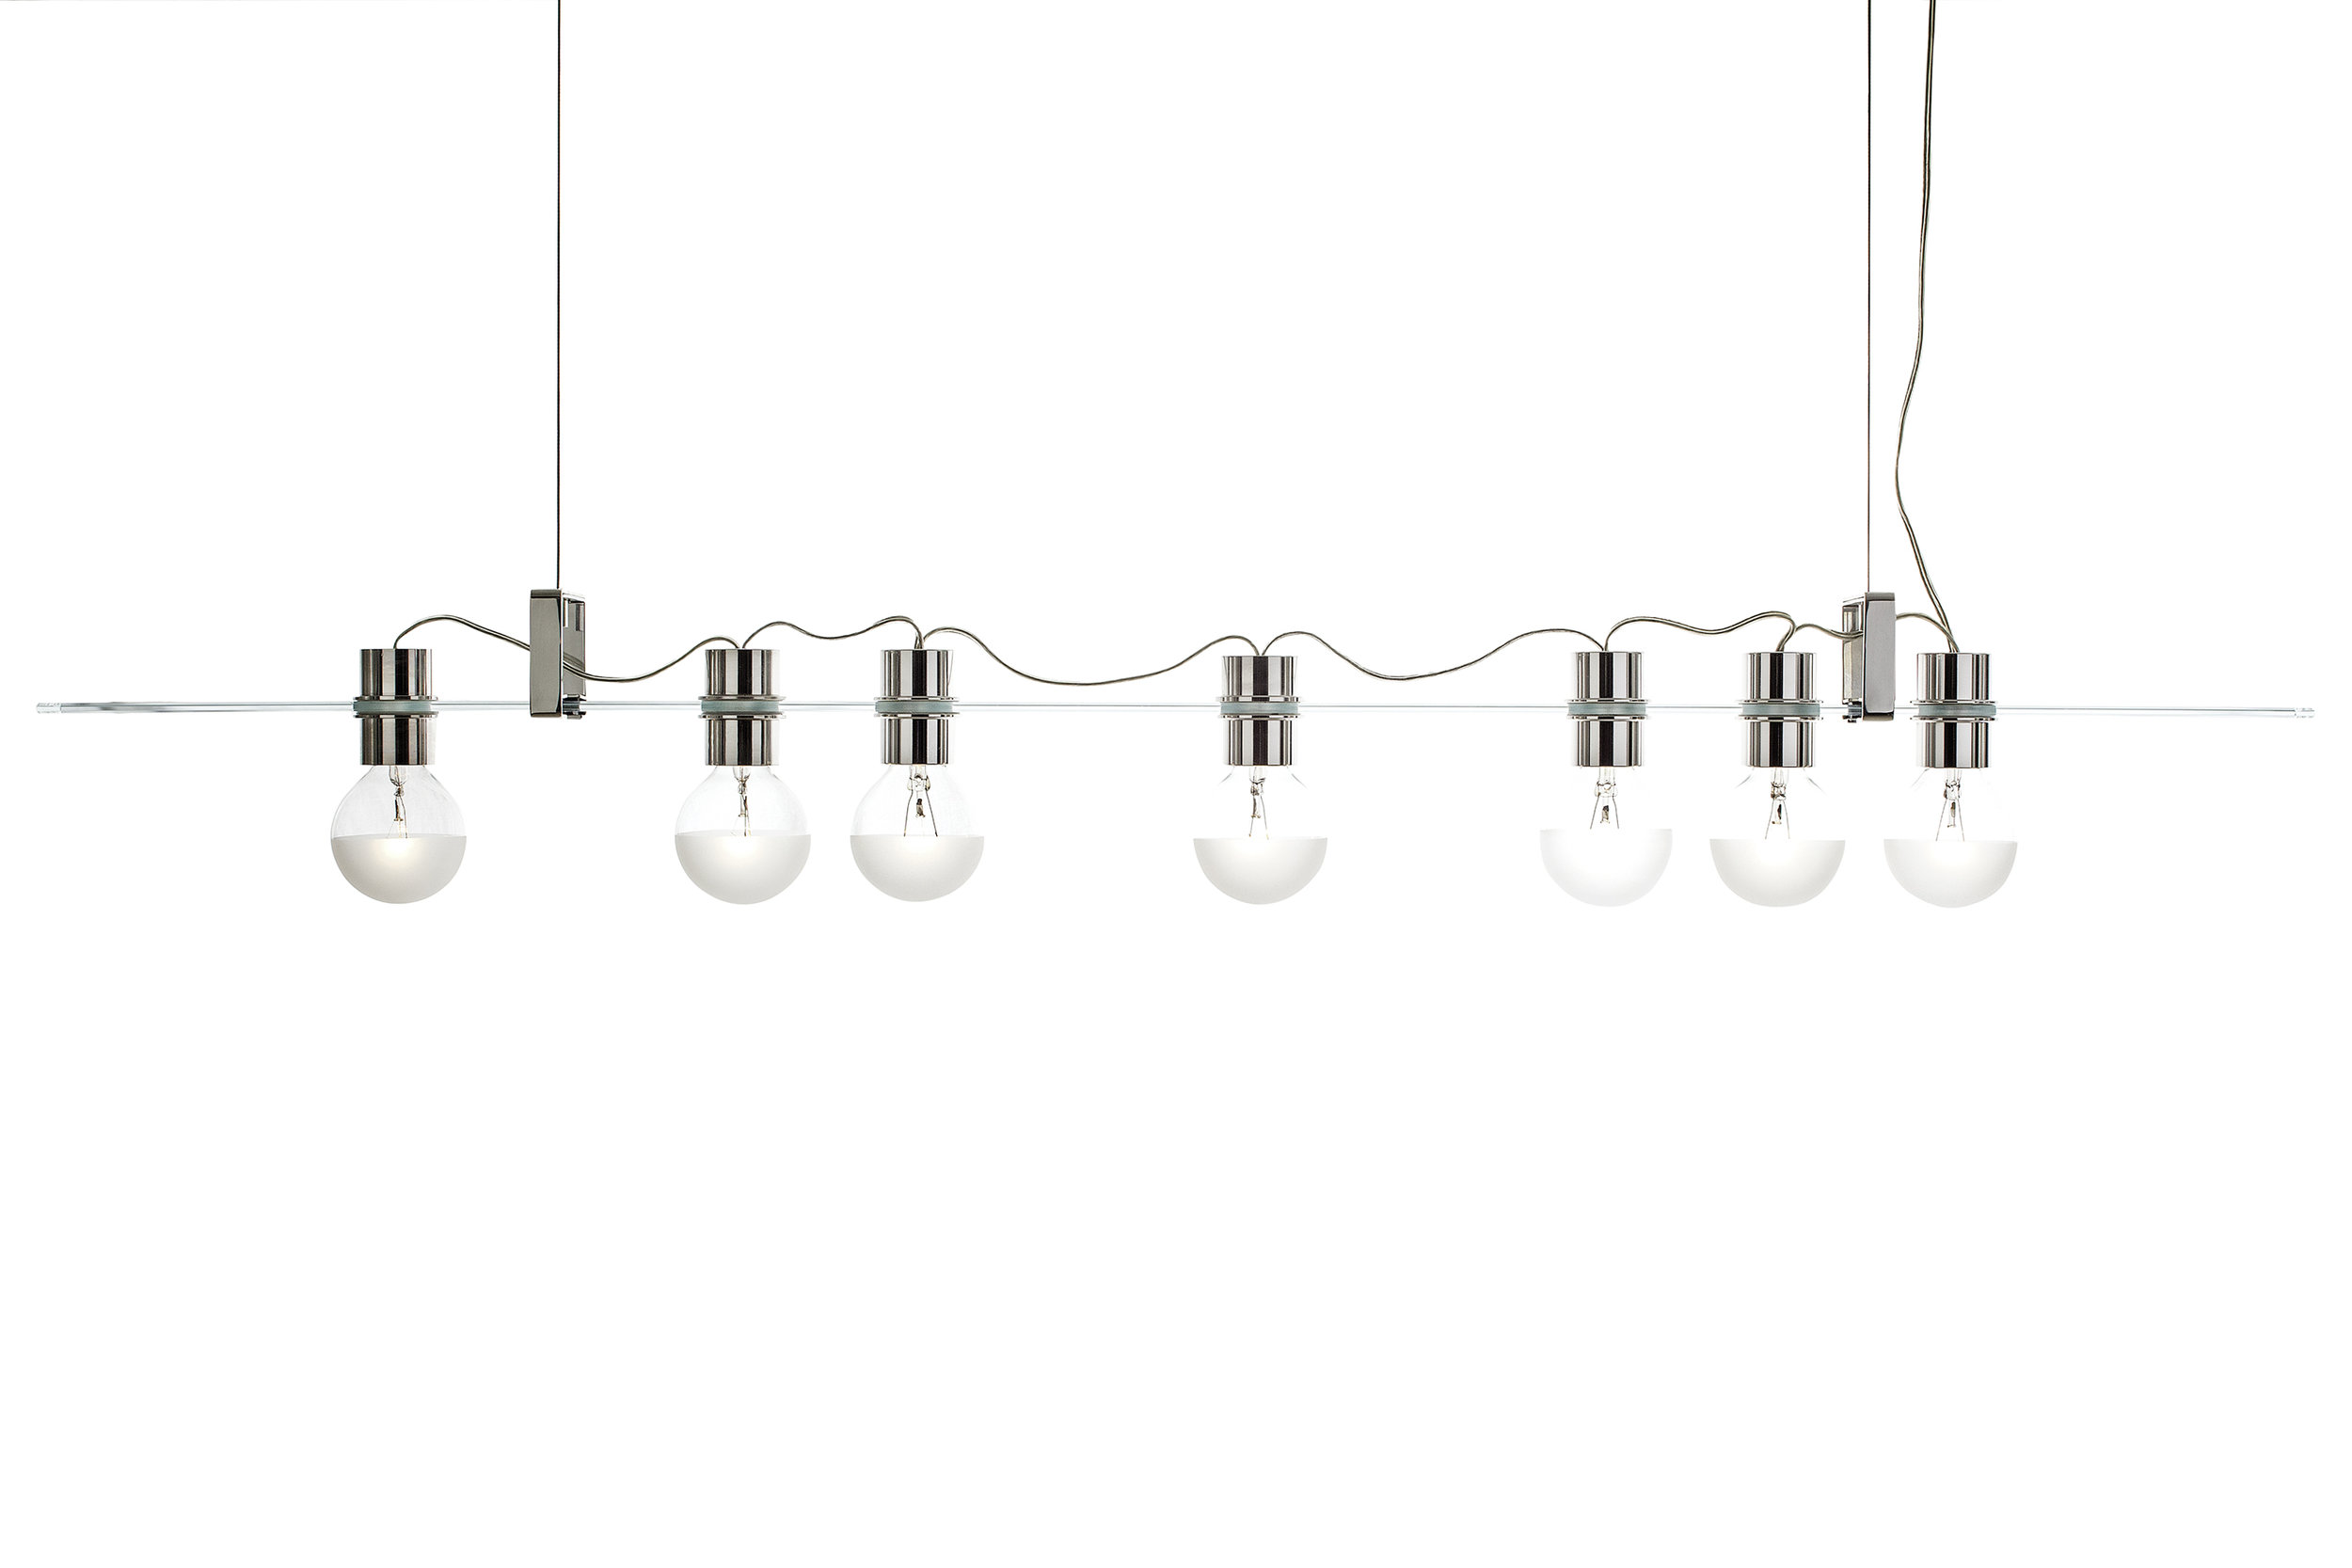 Avram_Rusu_Float_Chandelier_1.jpg